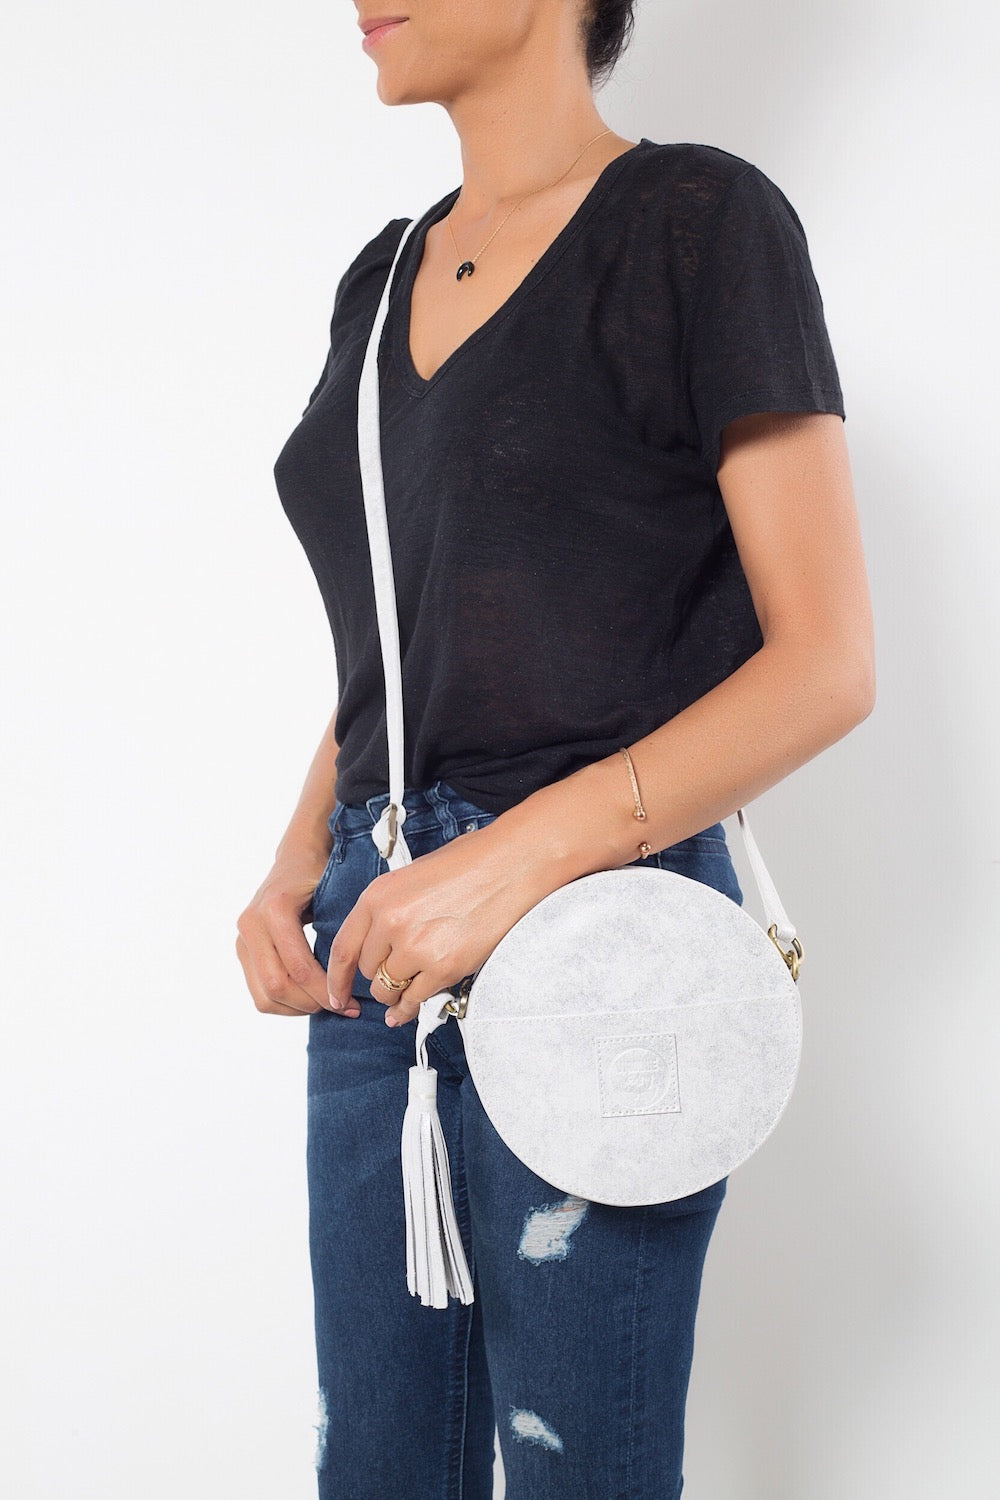 Darling Moon Silver Leather Circle Bag Virginie - Handbag